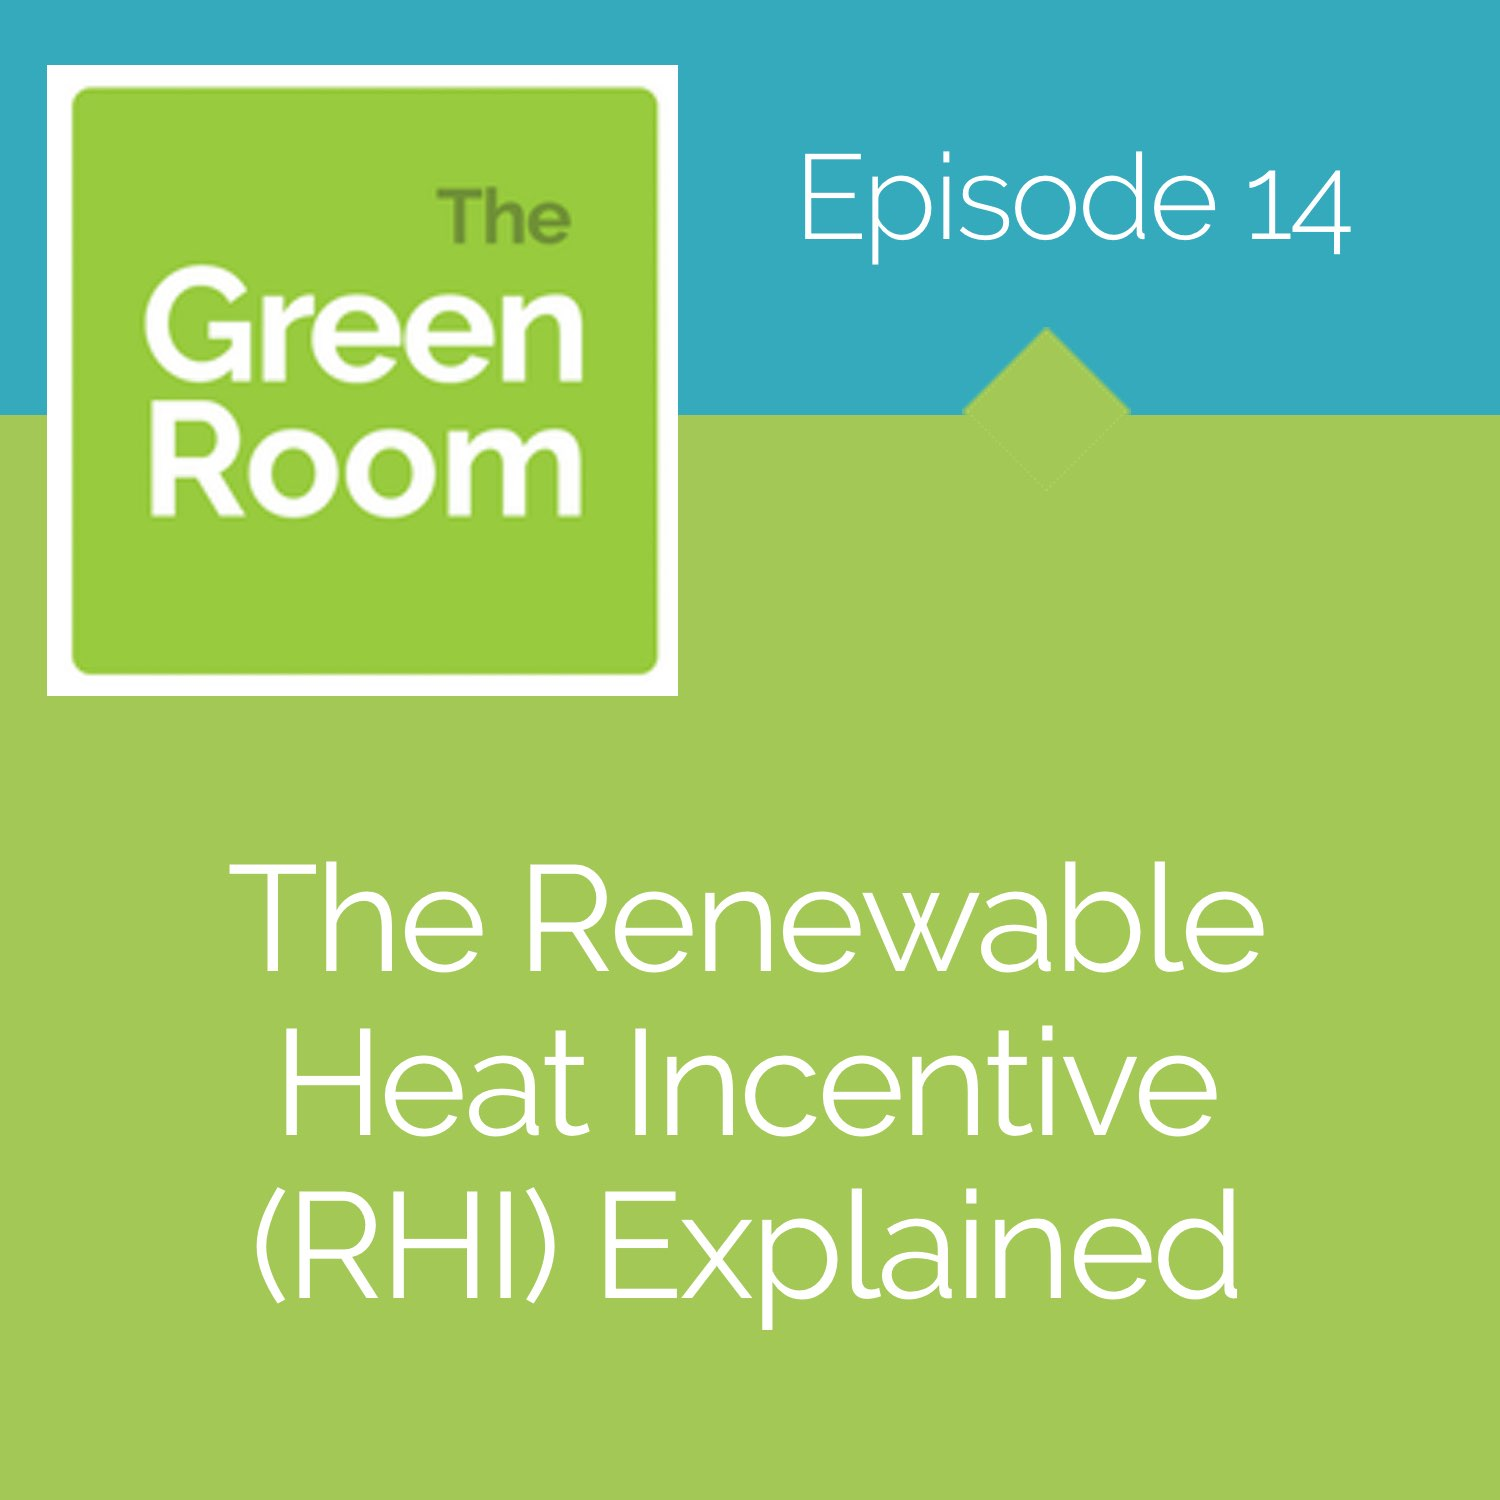 The Renewable Heat Incentive (RHI) Explained